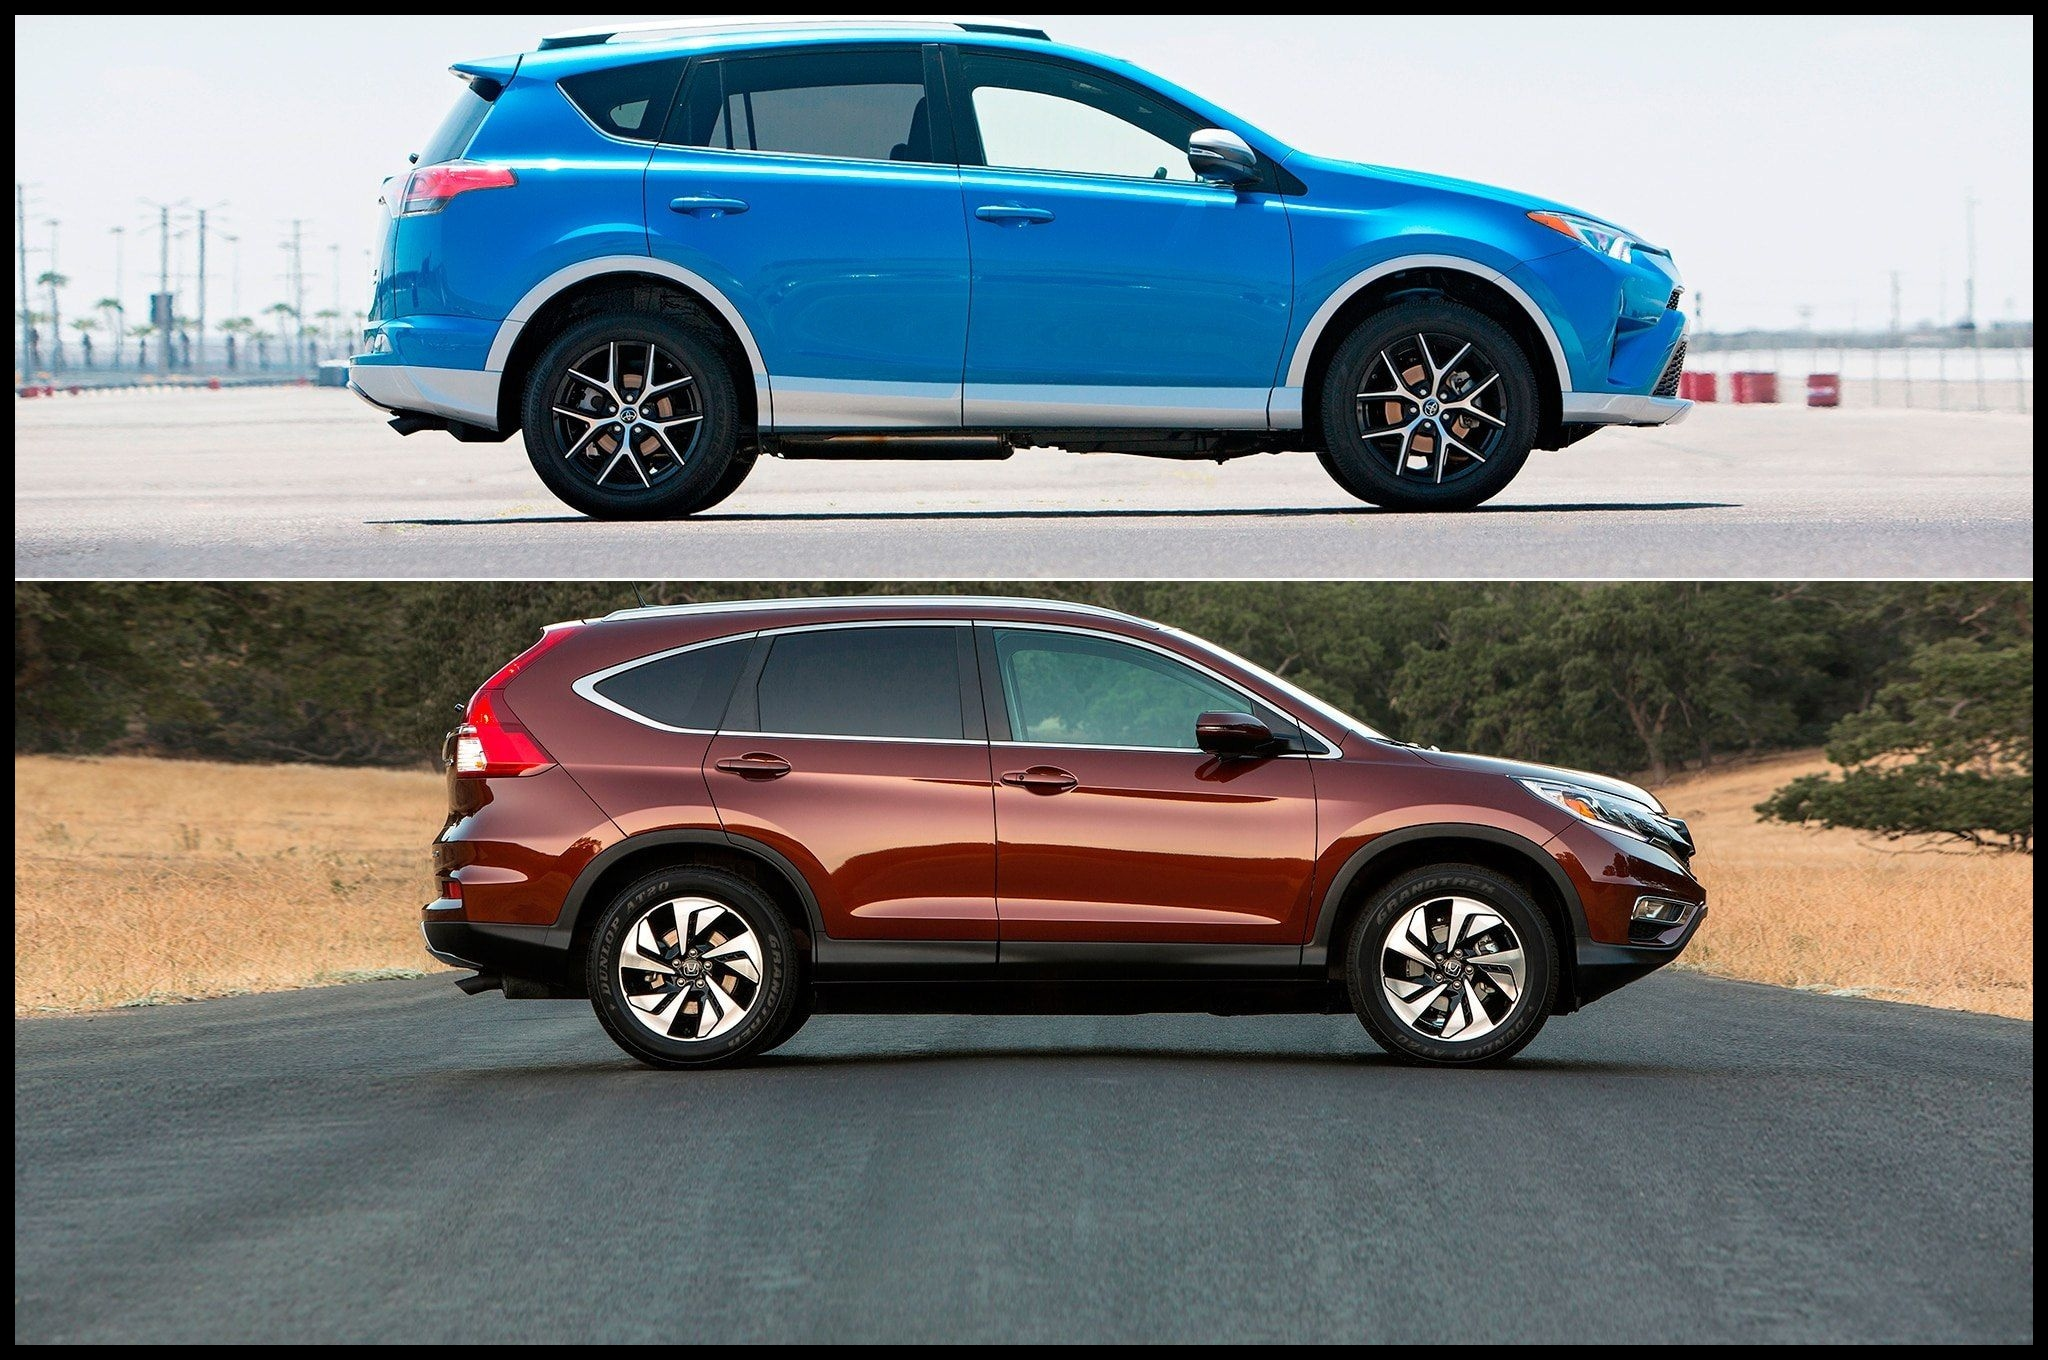 New Honda Crv Vs toyota Rav4 Crv Vs toyota Overview and Price